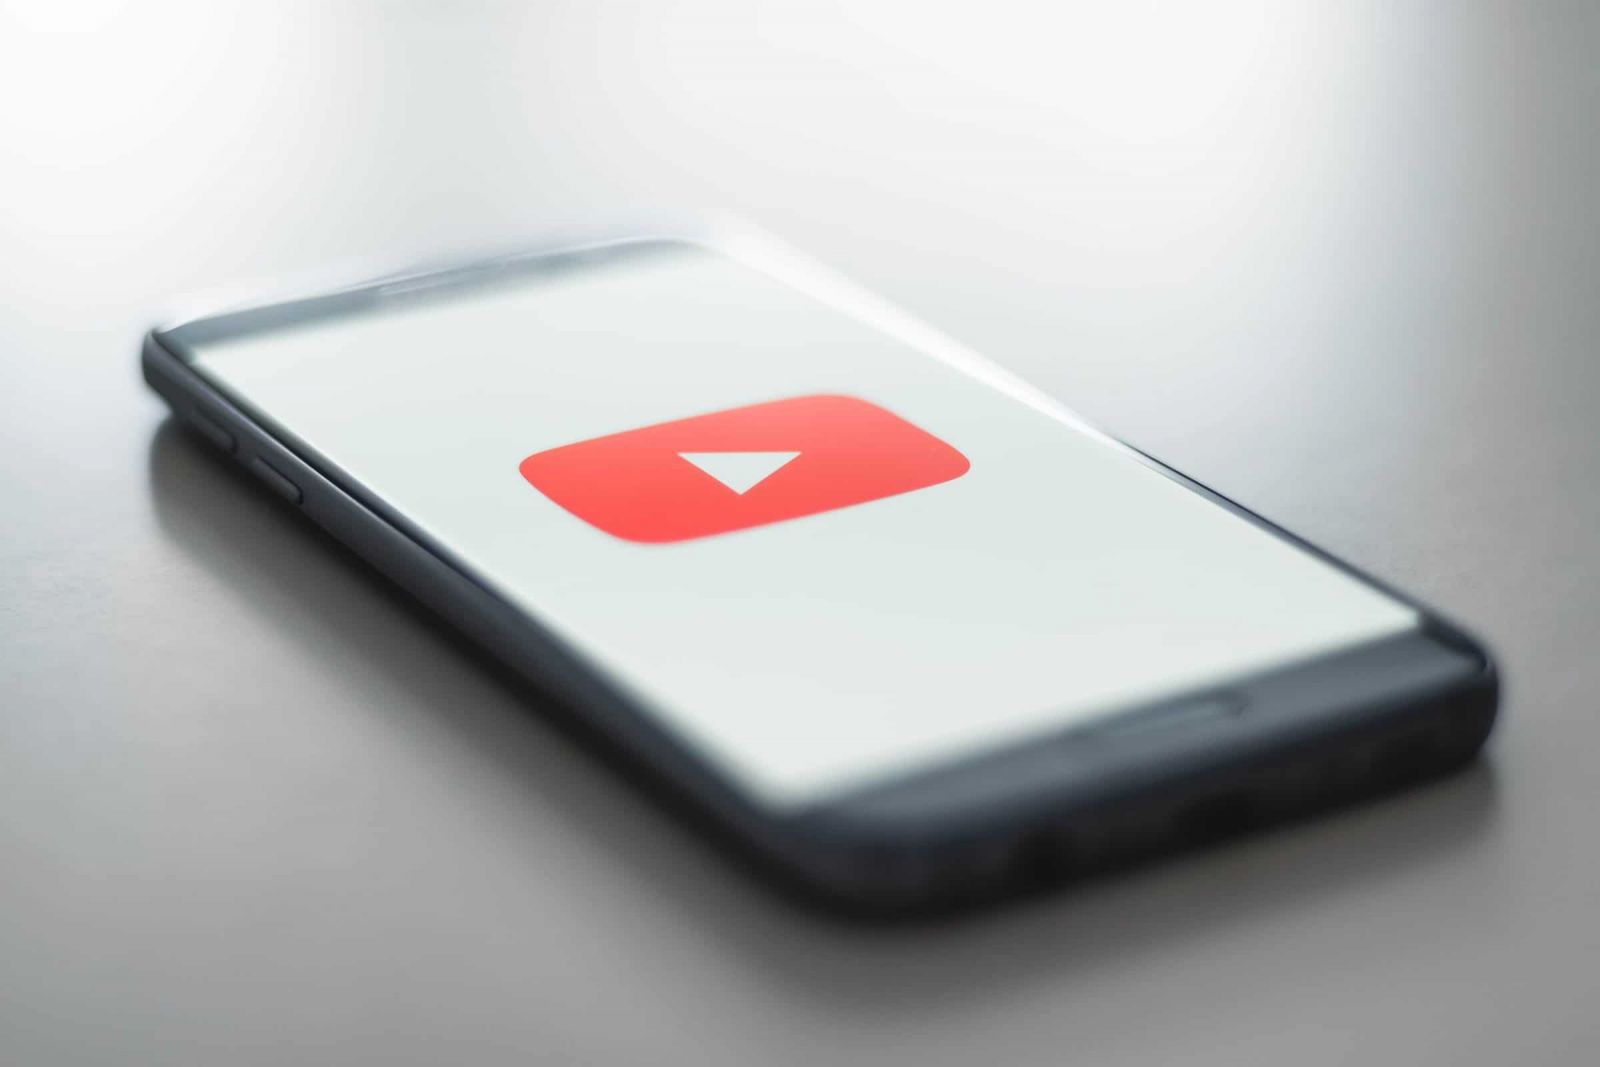 YouTube icon on a phone - The importance of vlogger outreach for nofollow links